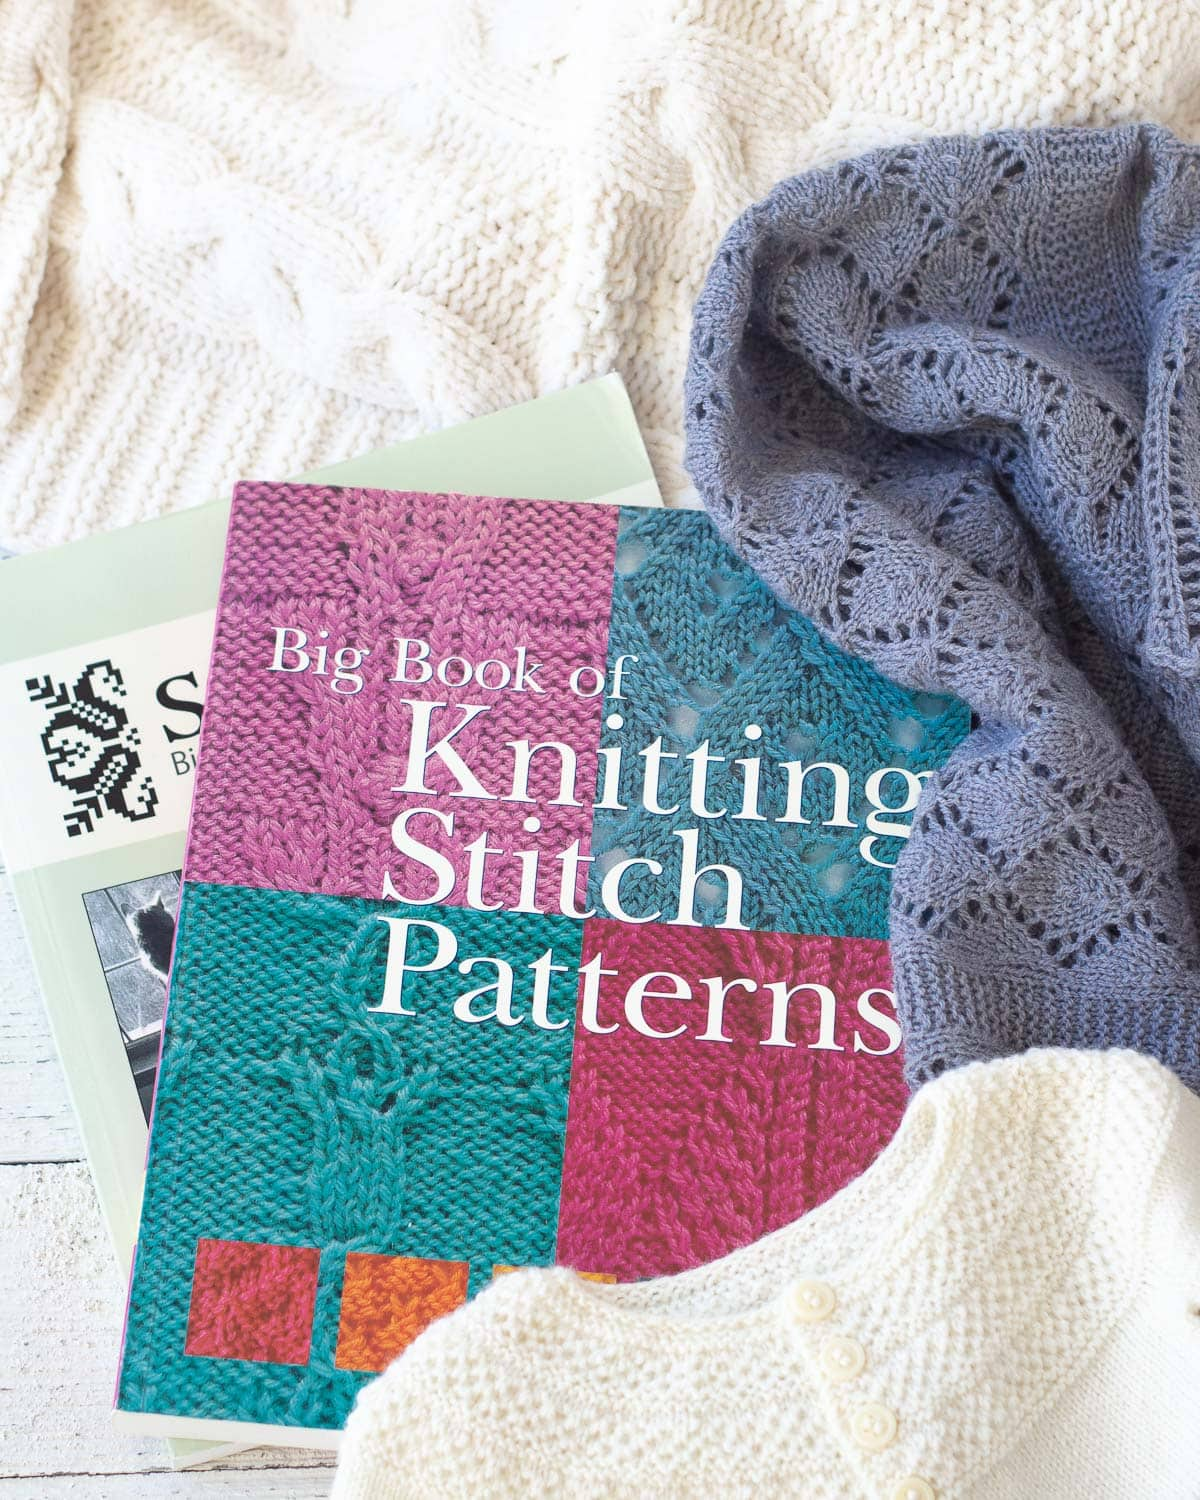 Knitting books surrounded by handknit items.